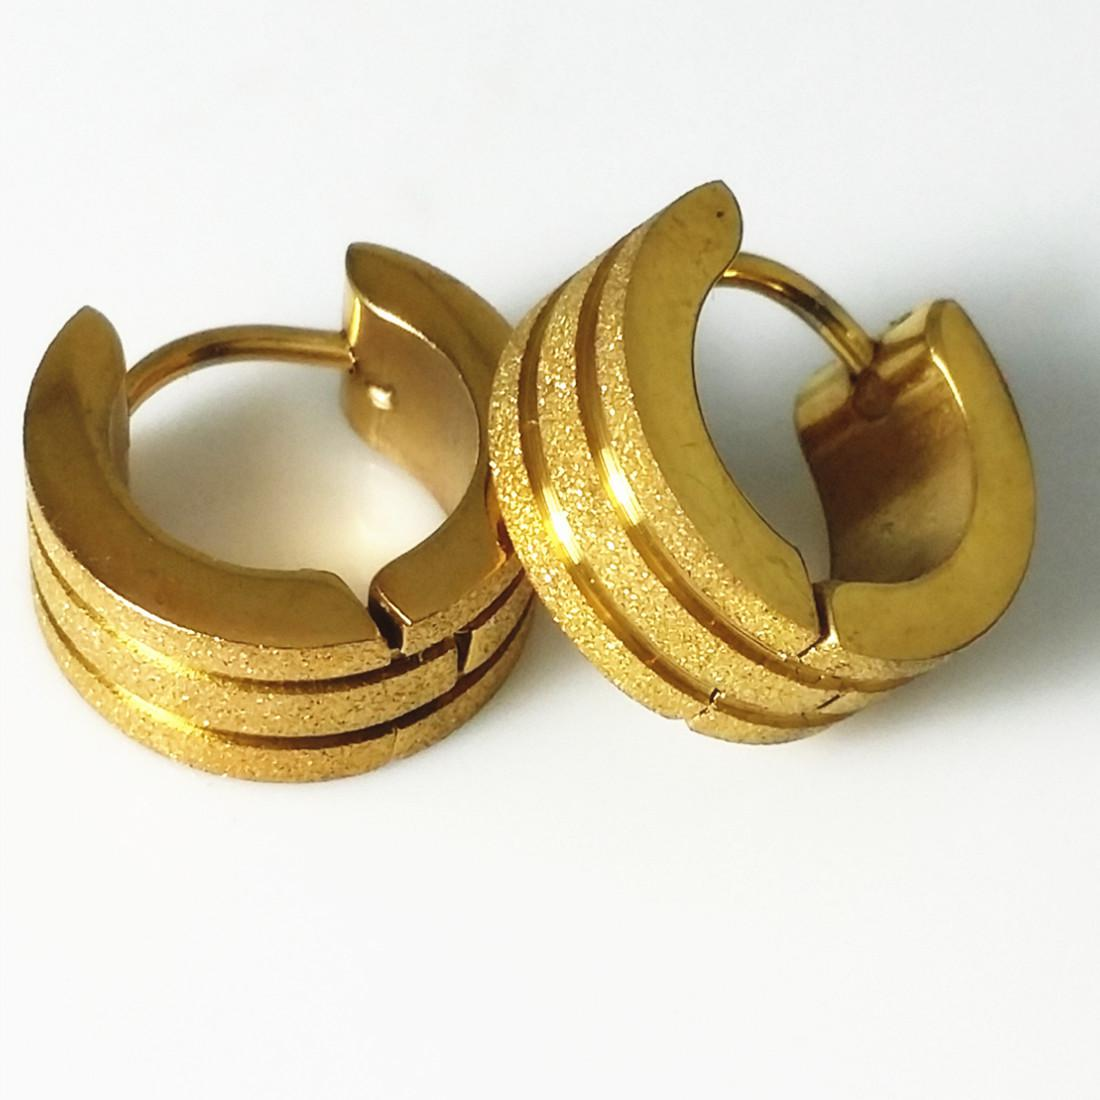 ring london dalia jewellery earrings home daou hoop shop untitled golden all